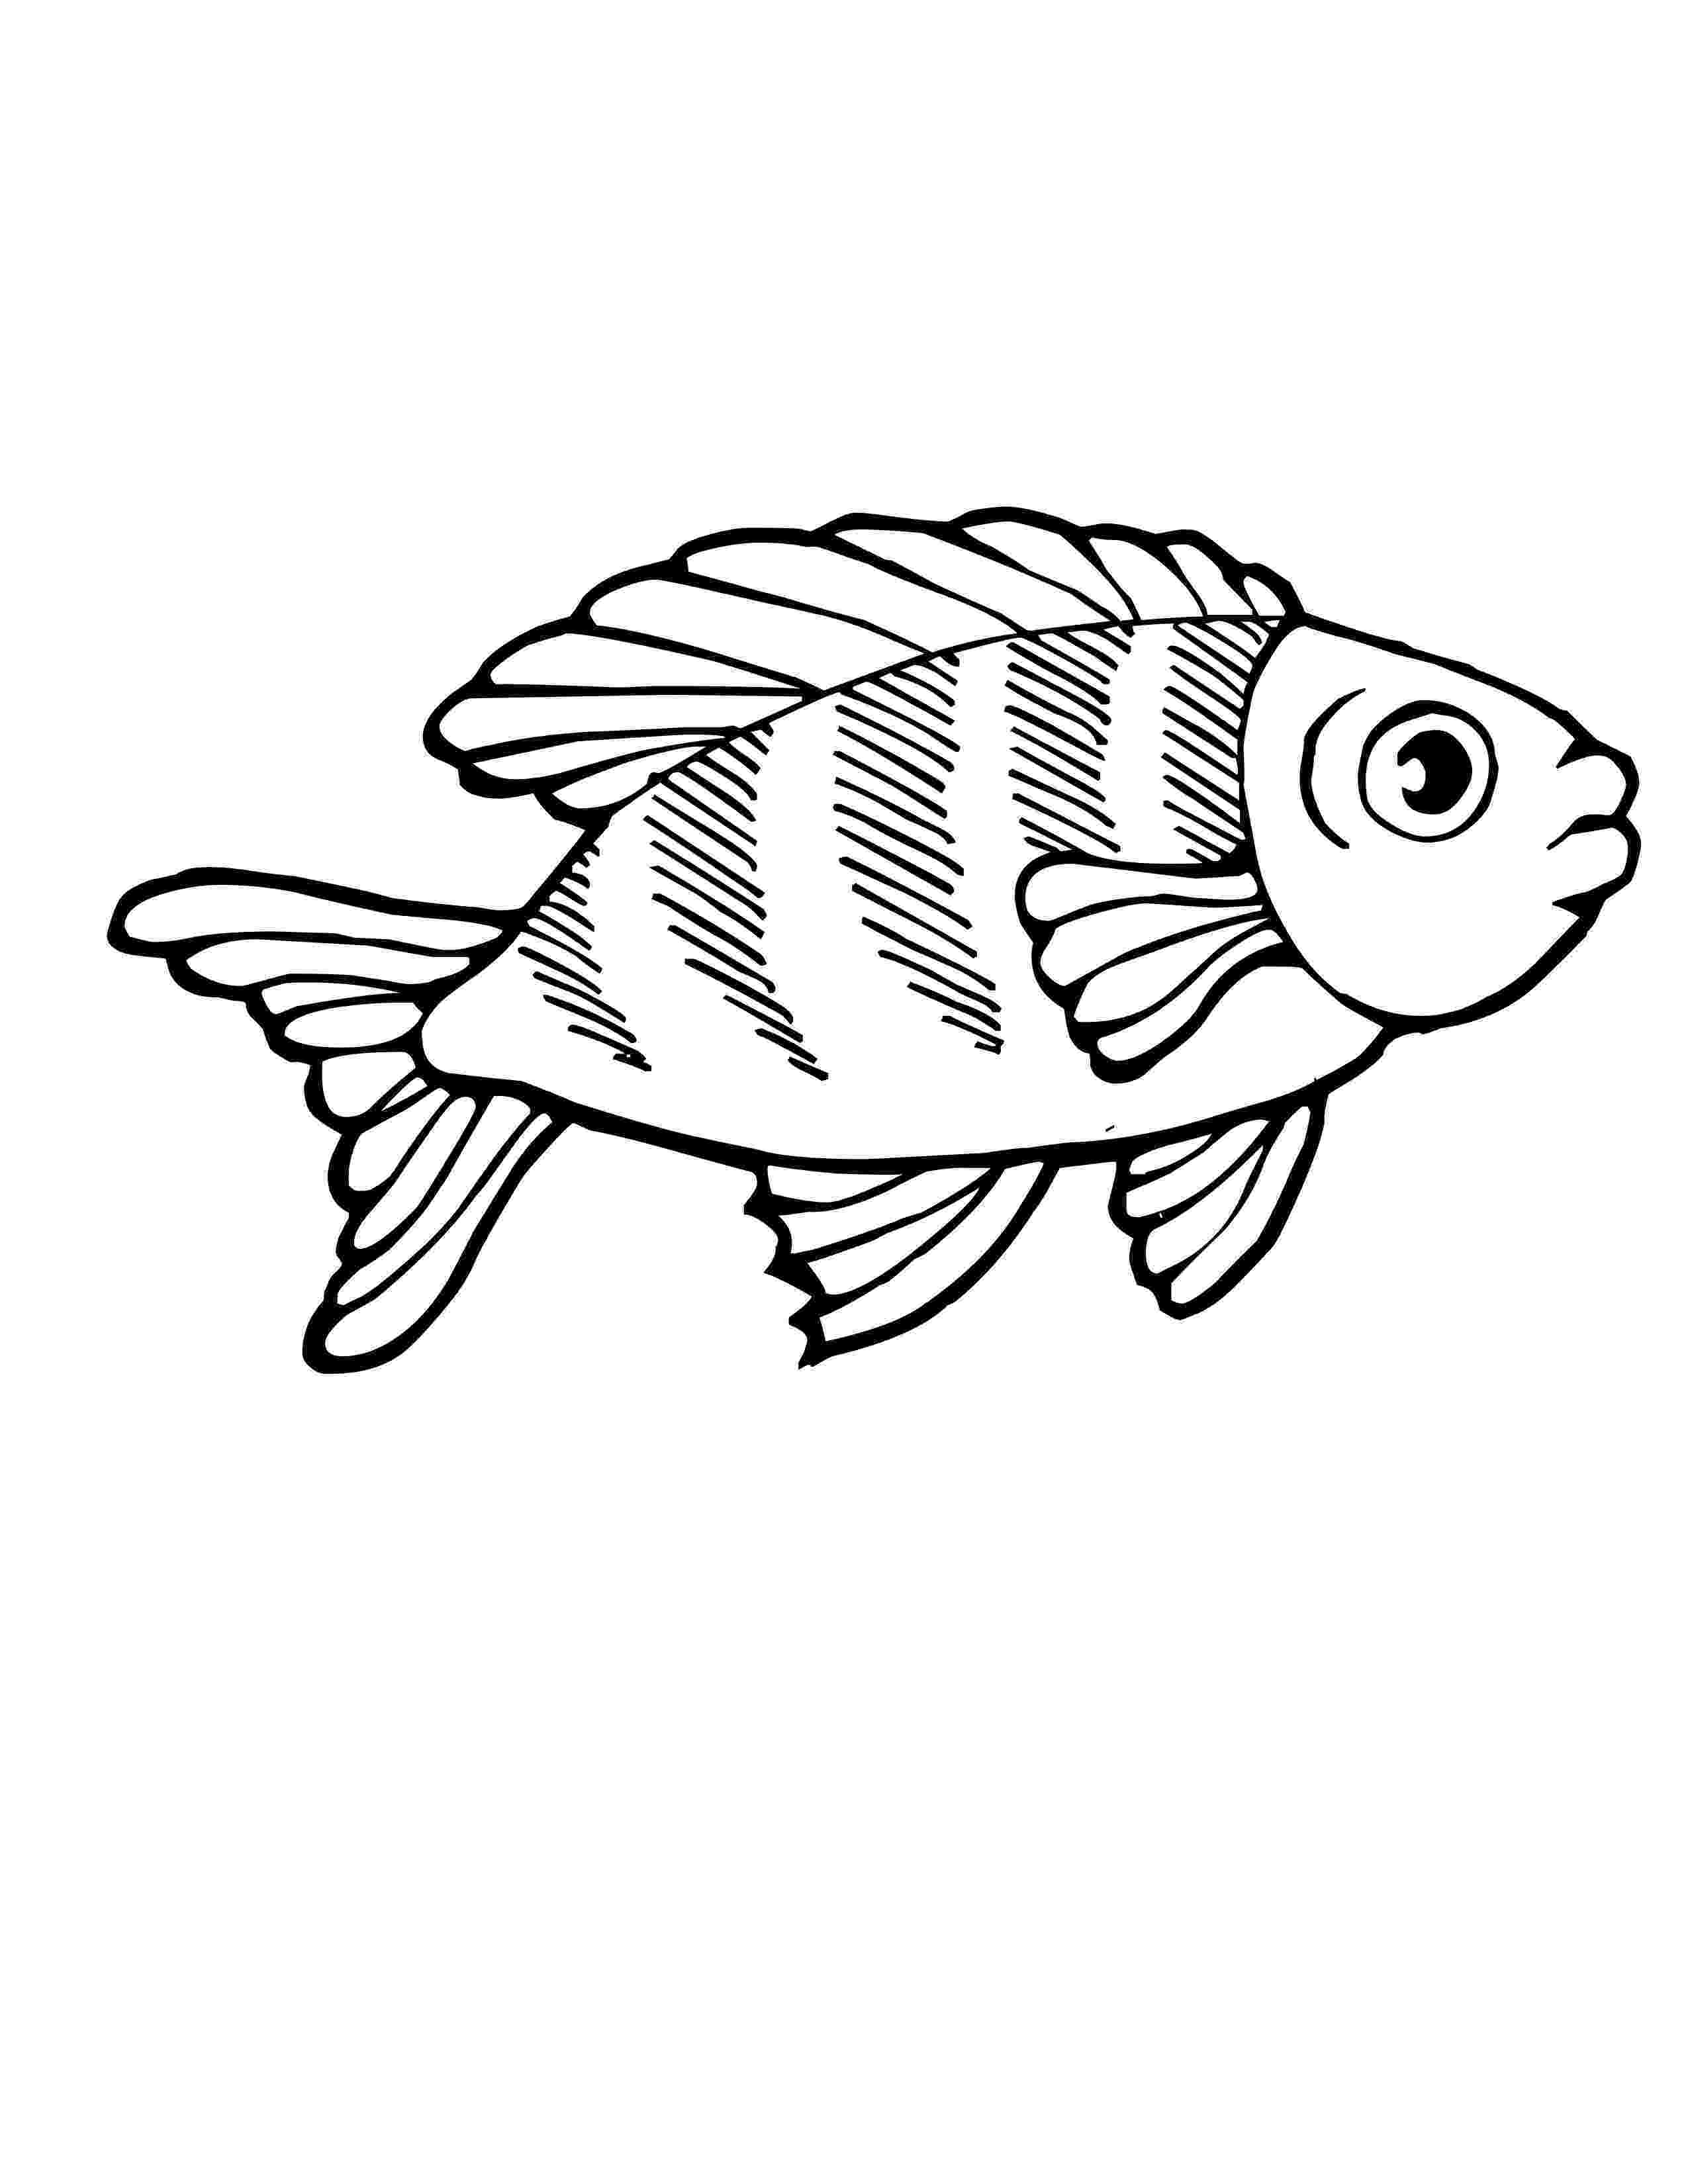 saltwater fish coloring pages coral reef fishes free printable templates coloring coloring pages fish saltwater